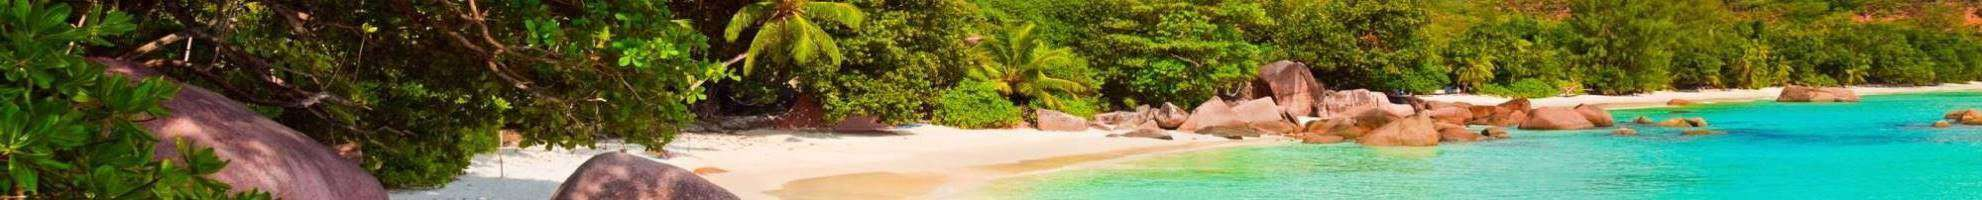 Lets go to the Indian Ocean Islands with Taga Safaris